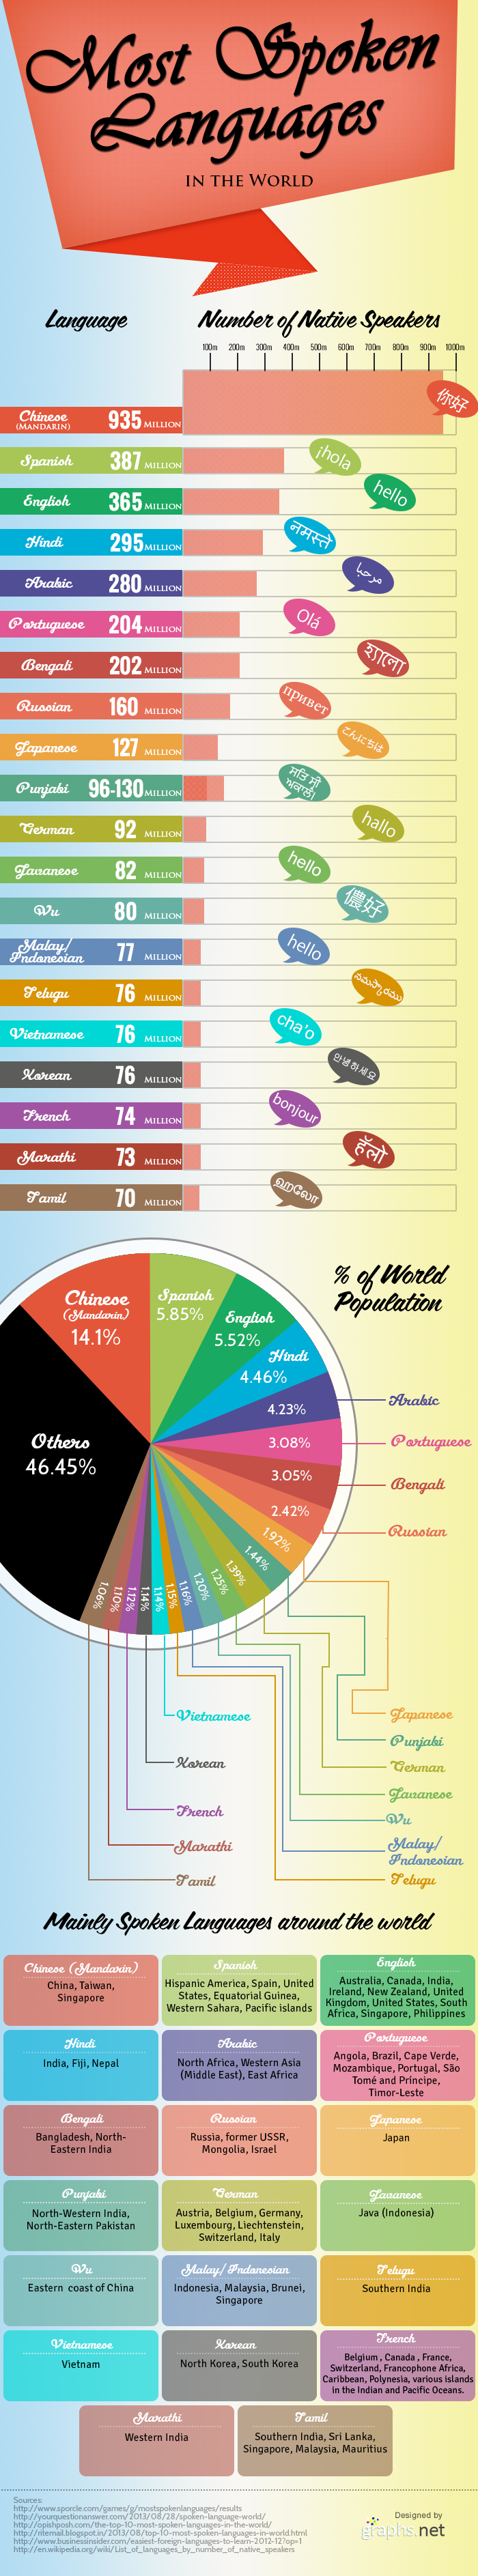 Most Spoken Languages in the World